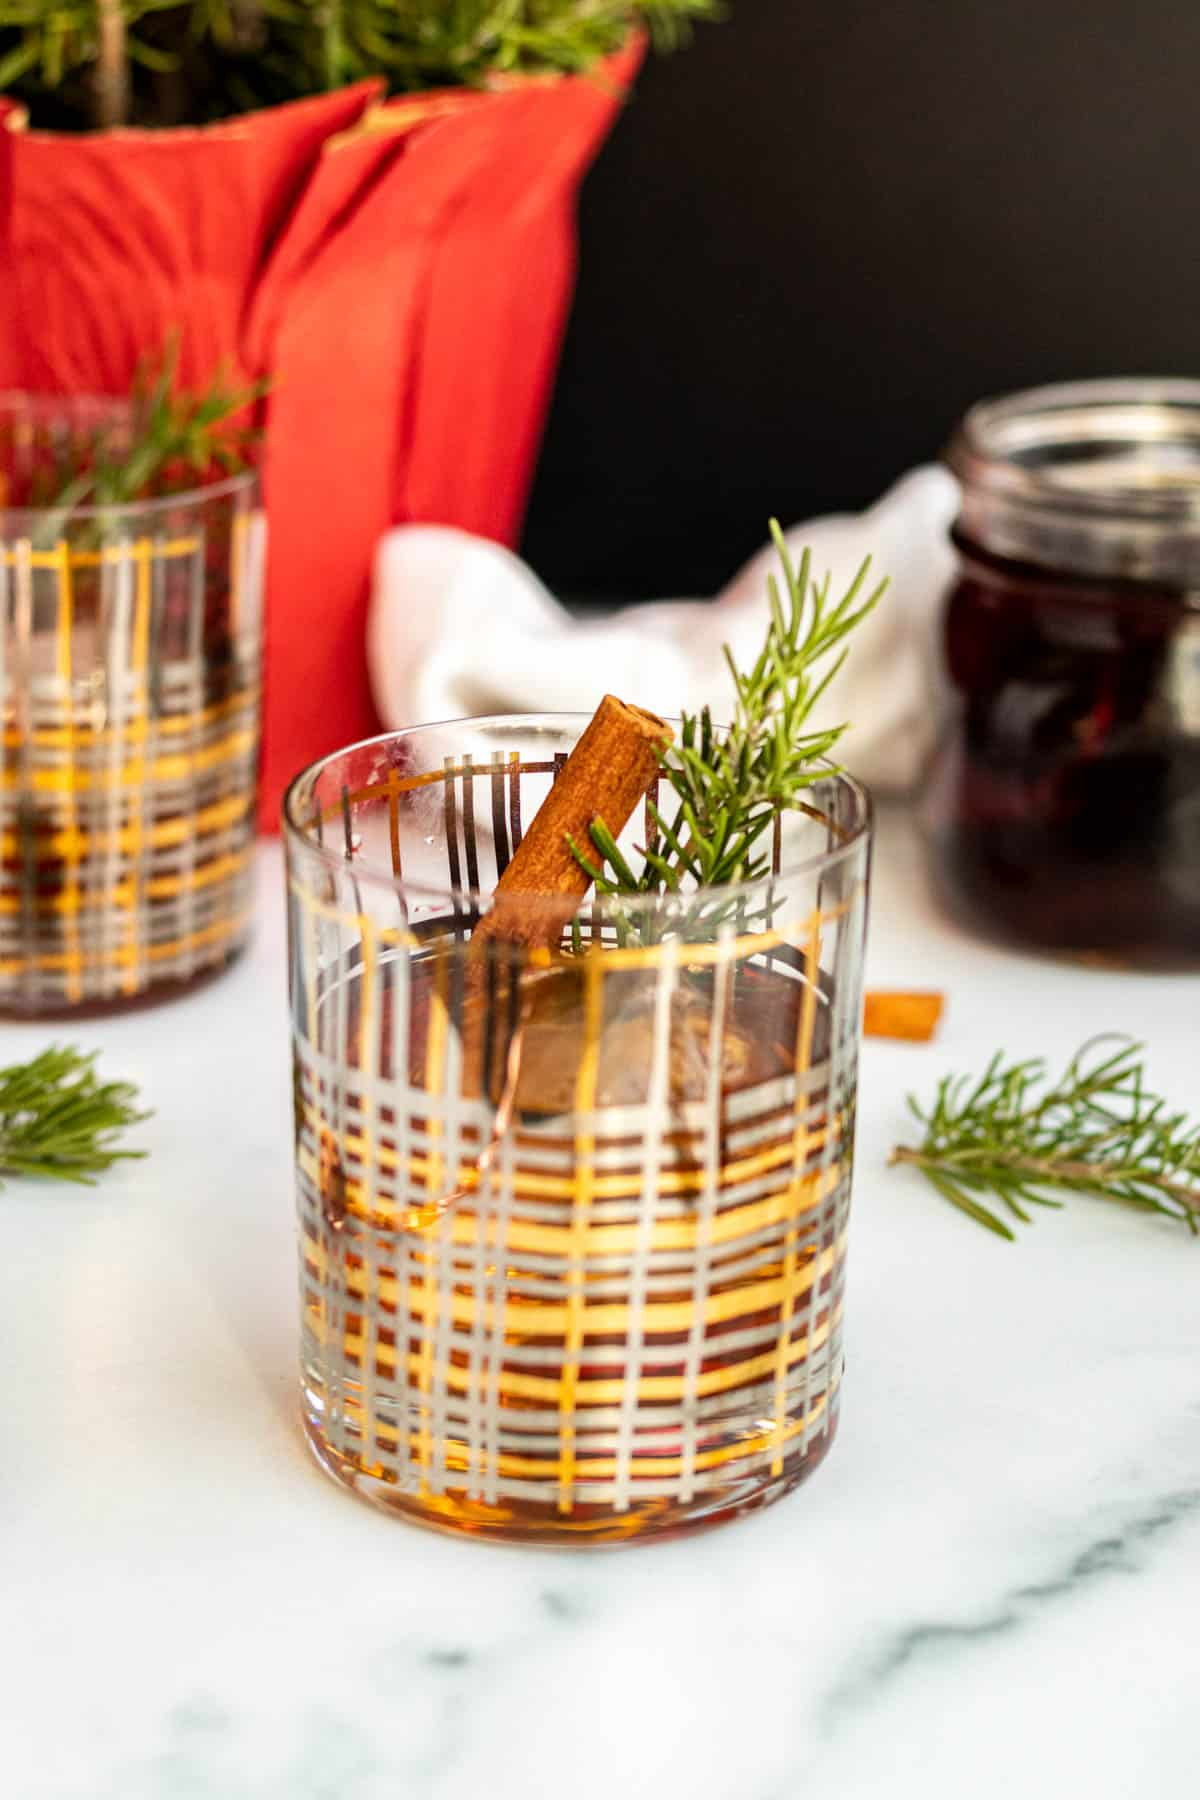 winter old fashioned cocktail in a gold and silver striped rocks glass with rosemary sprigs scattered around